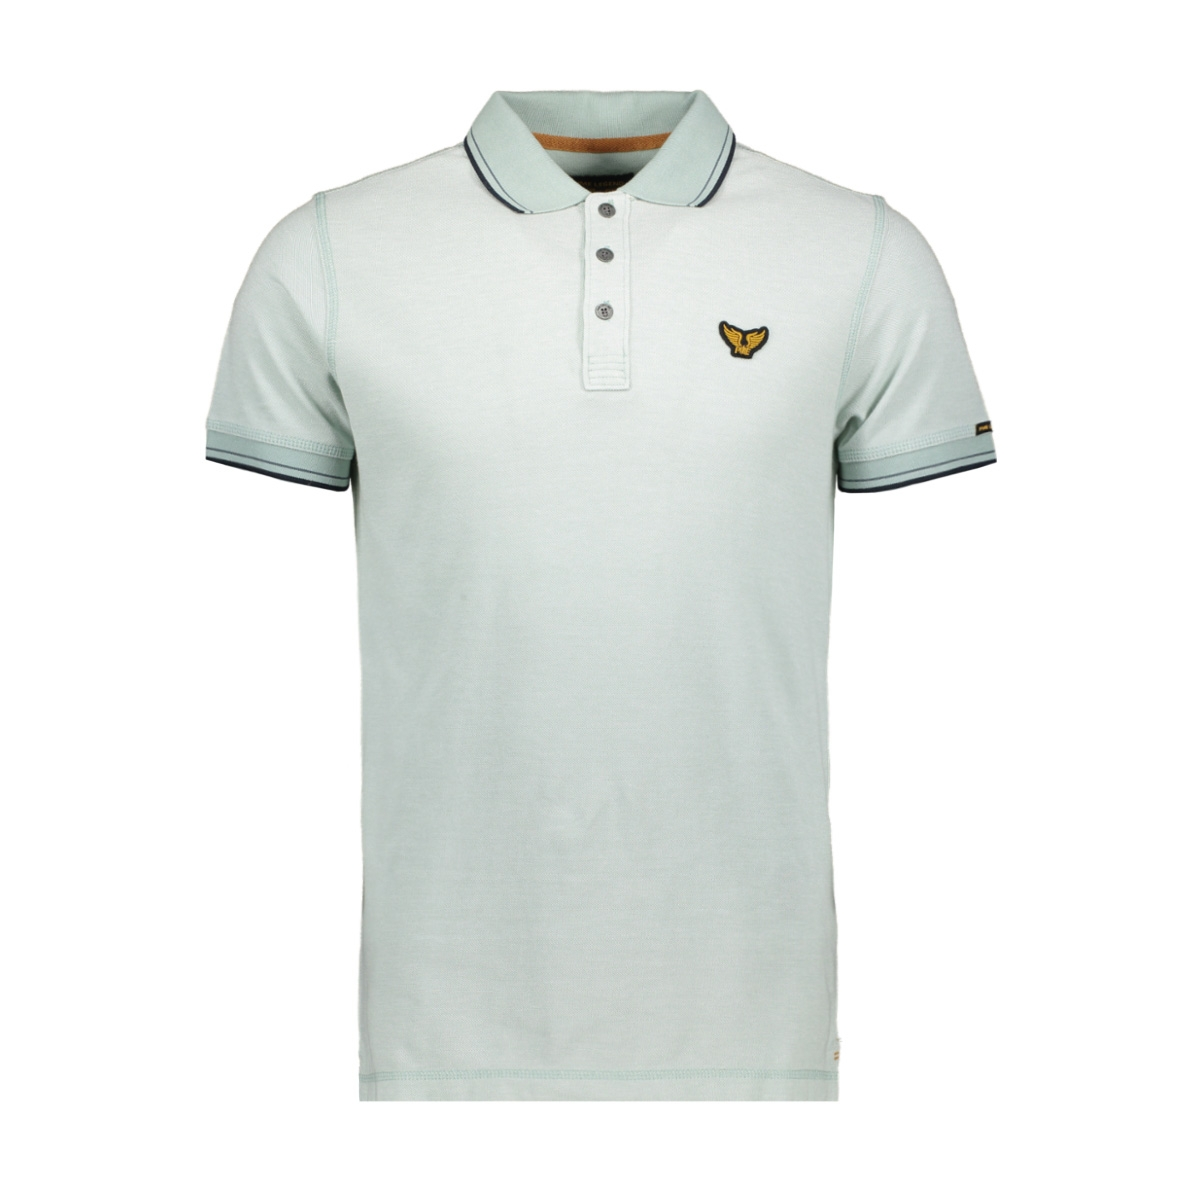 polo two tone pique ppss192869 pme legend polo 5147